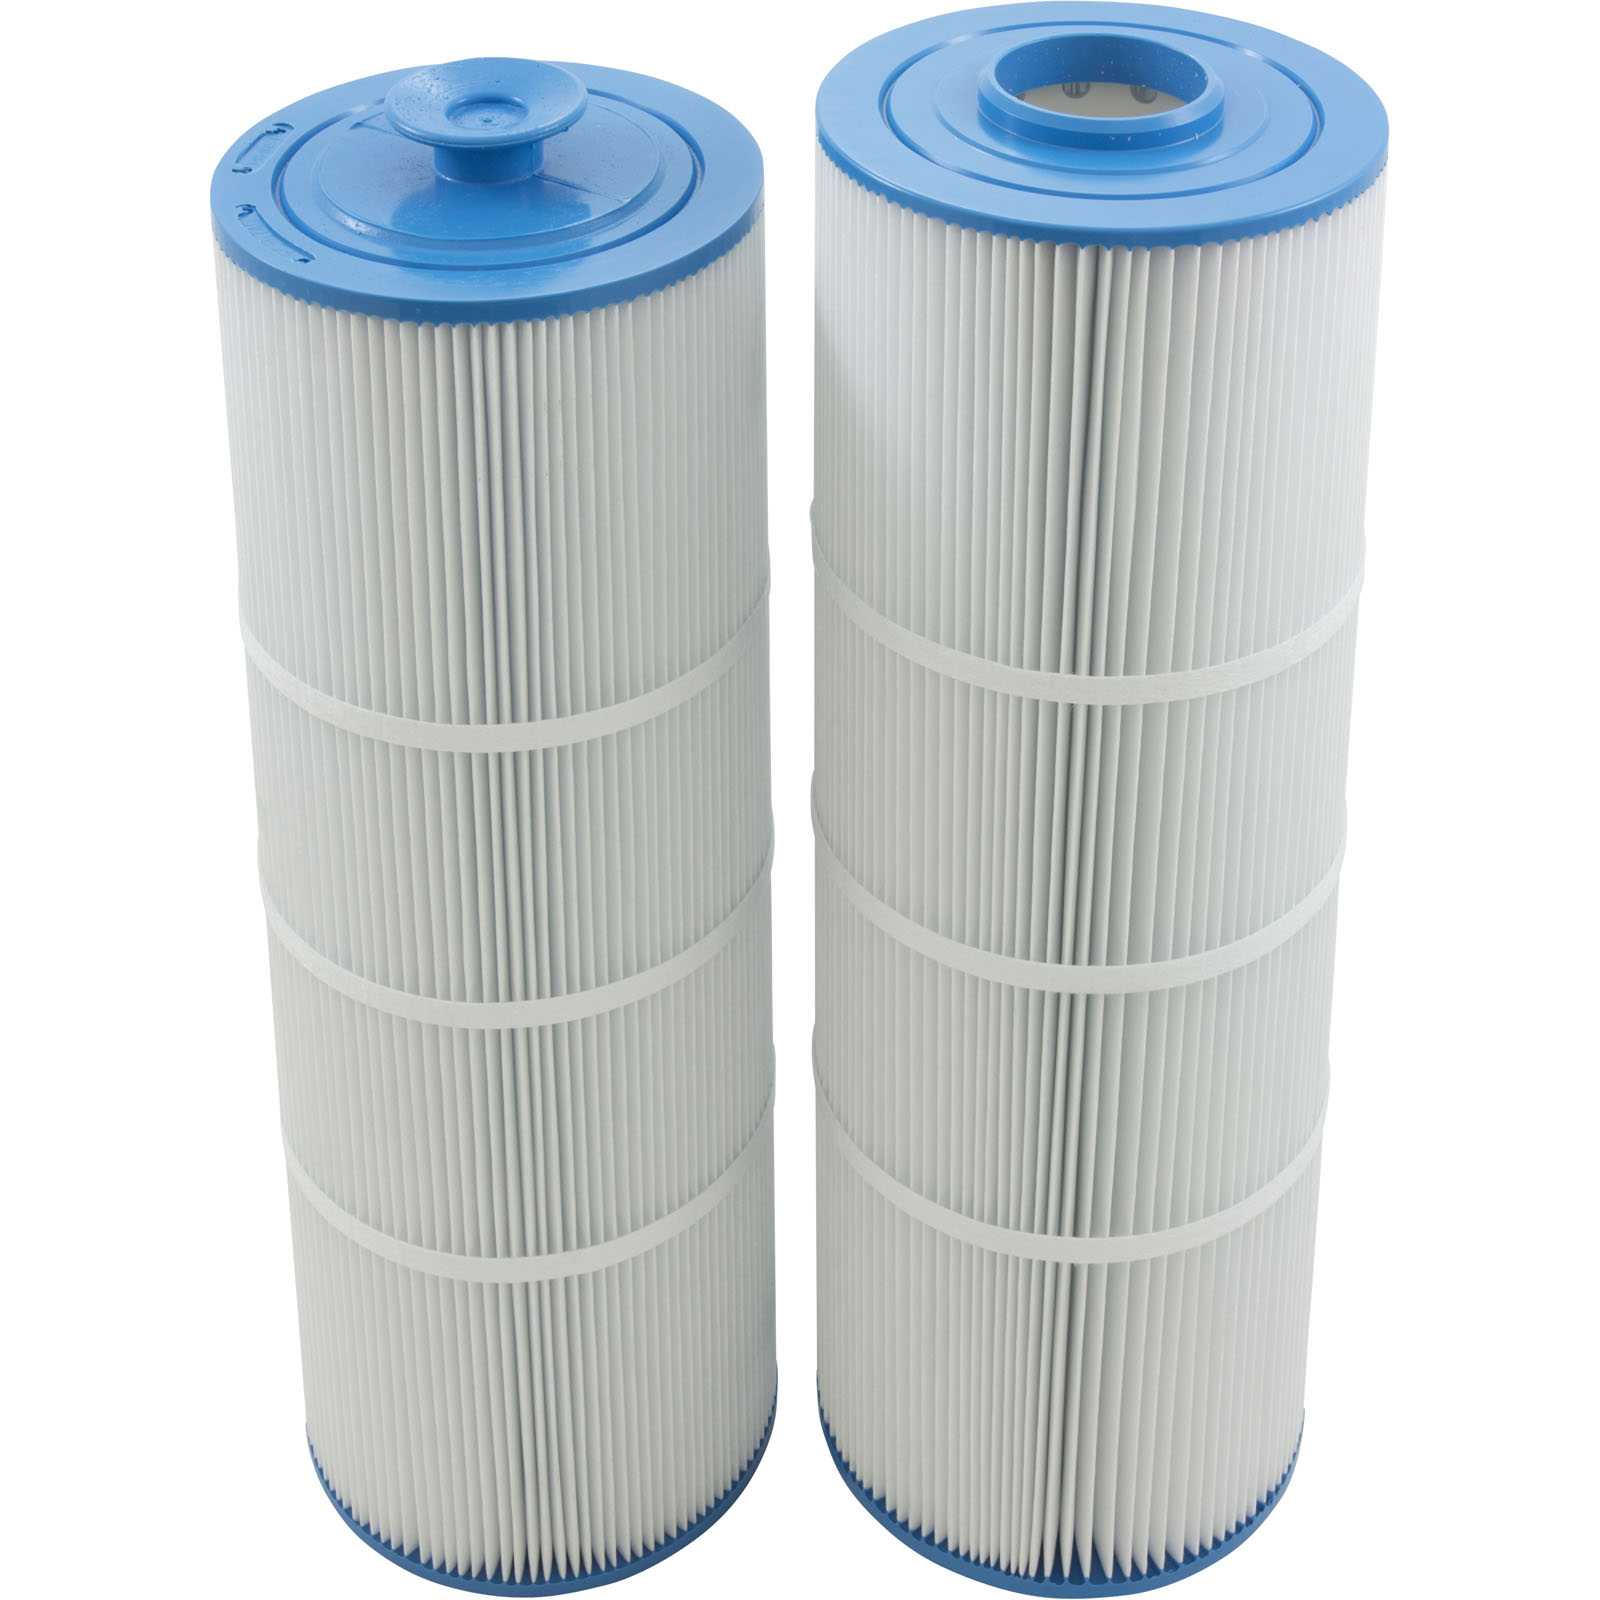 Hydromite Series 100sqft Replacement Filter Cartridge ...